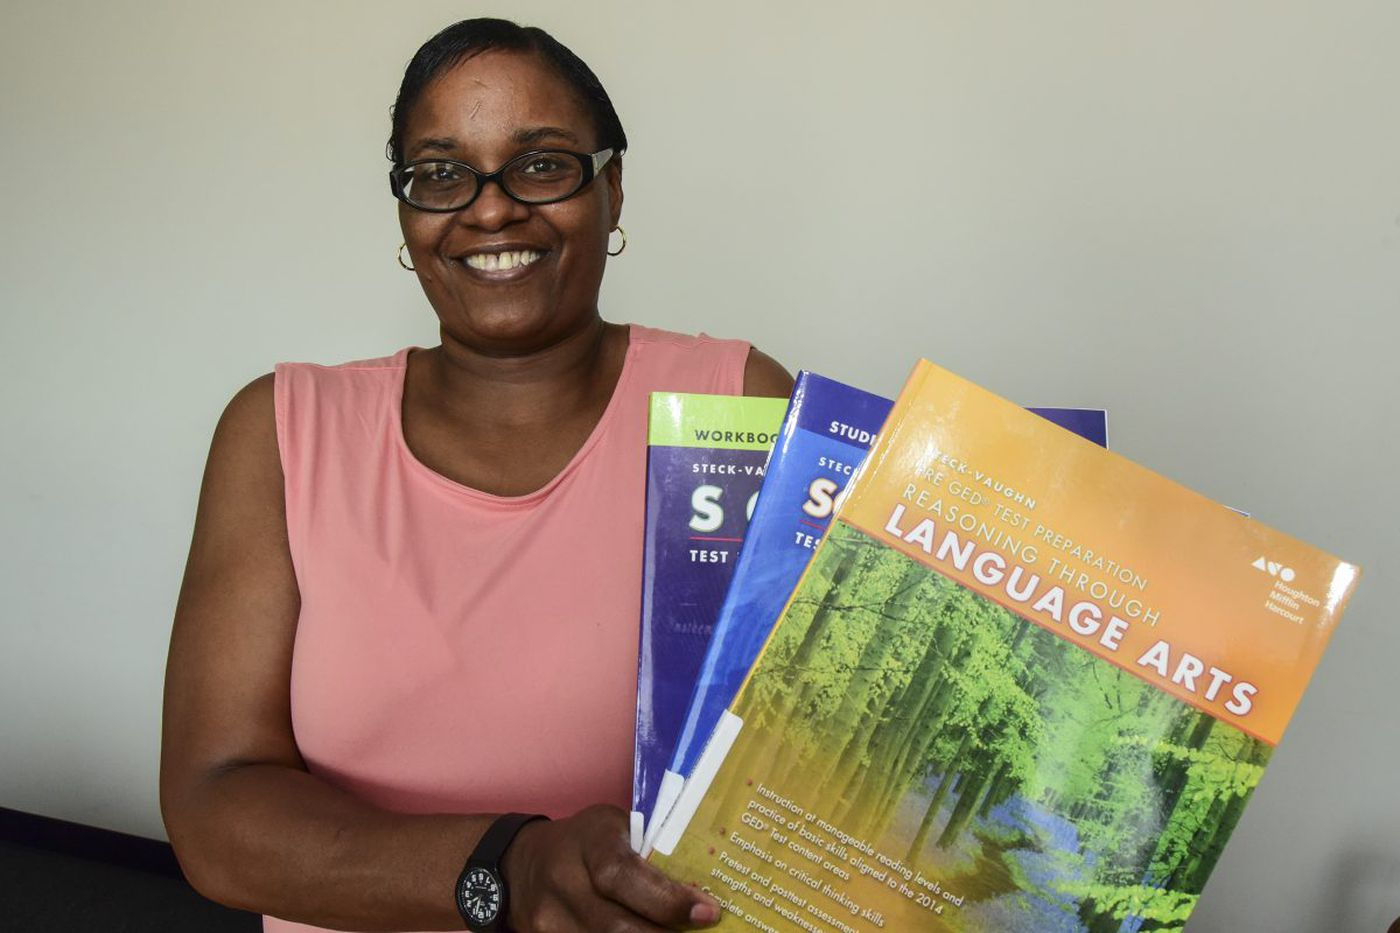 At 46, this Philly woman learned to read - and then published a book